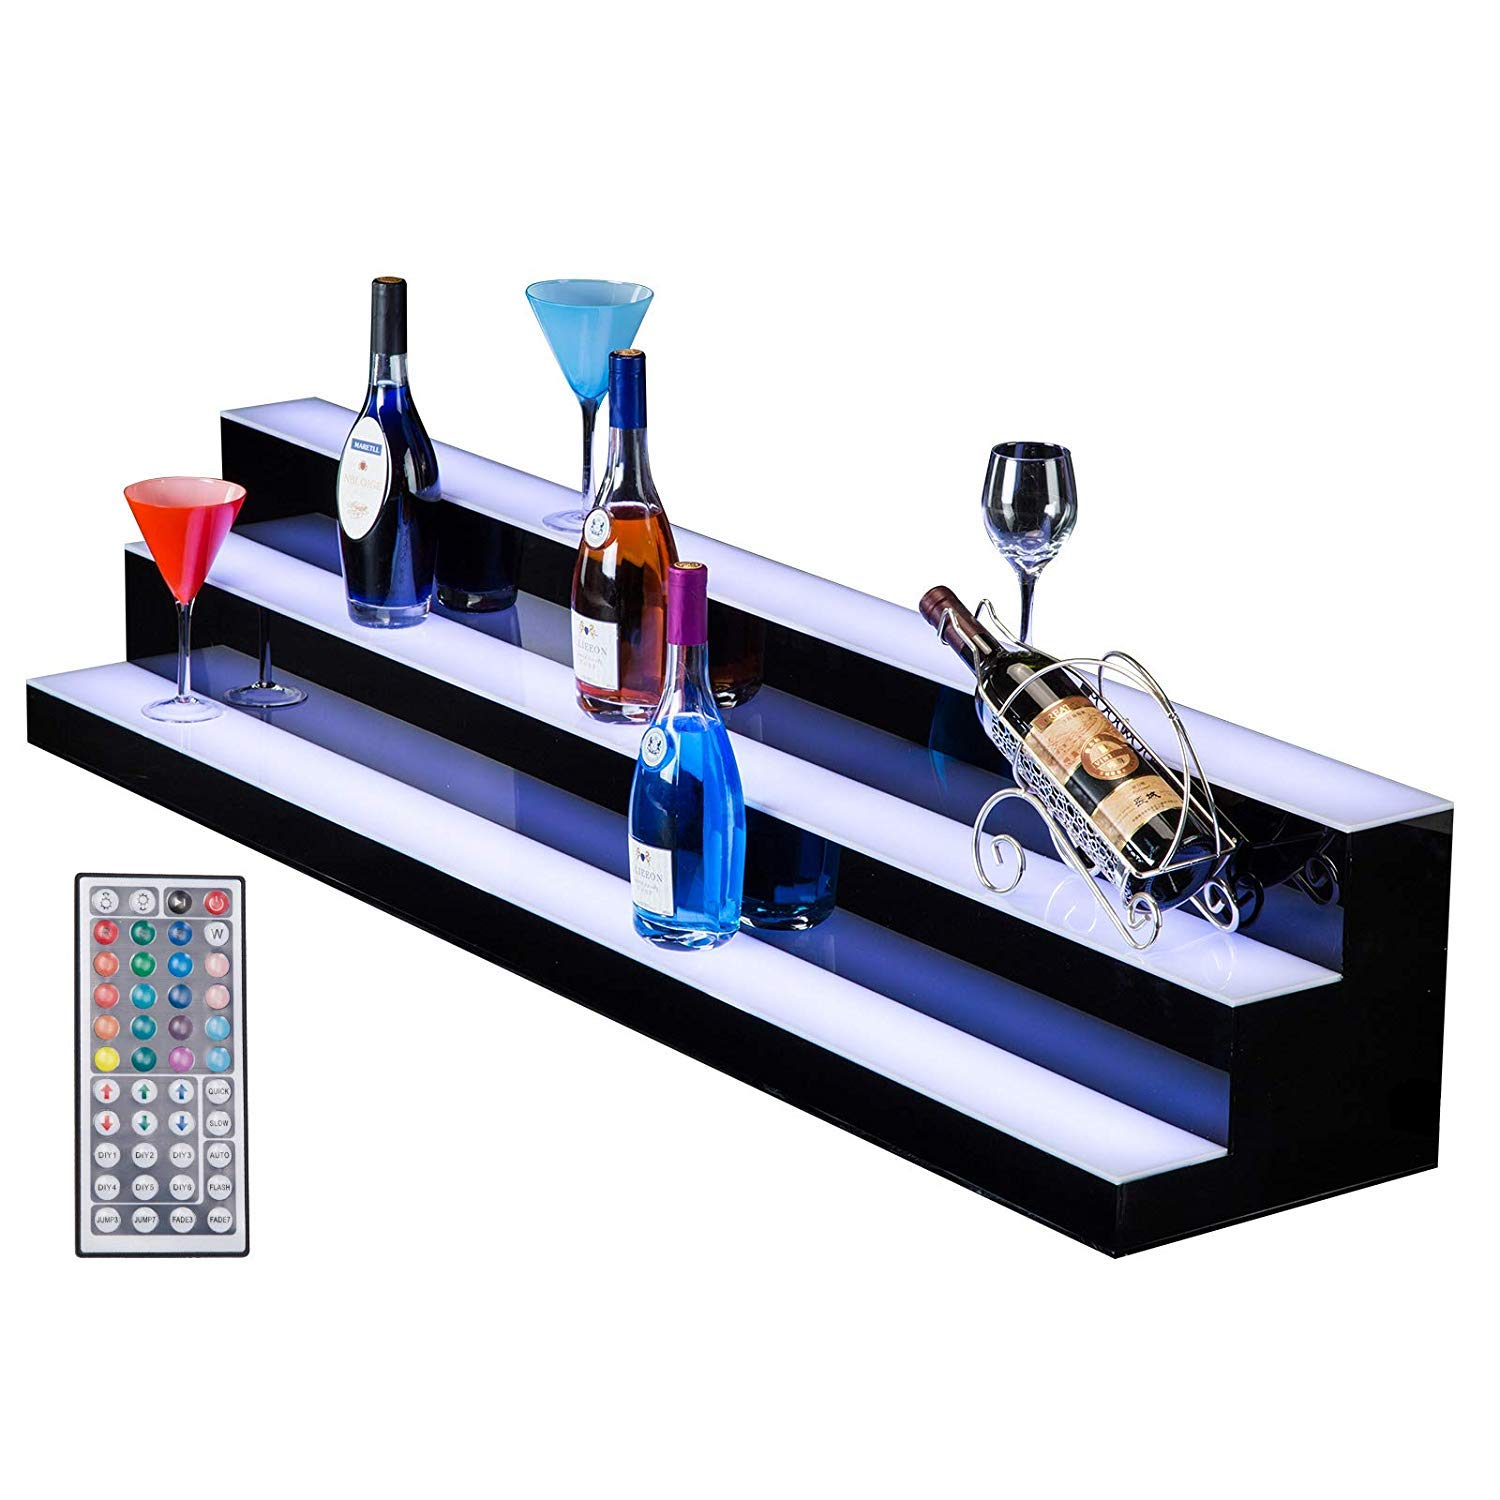 SUNCOO LED Lighted Liquor Bottle Display 60'' 3 Step Illuminated Bottle Shelf 3 Tier Home Bar Bottle Shelf Drinks Lighting Shelves with Remote Control by SUNCOO (Image #1)